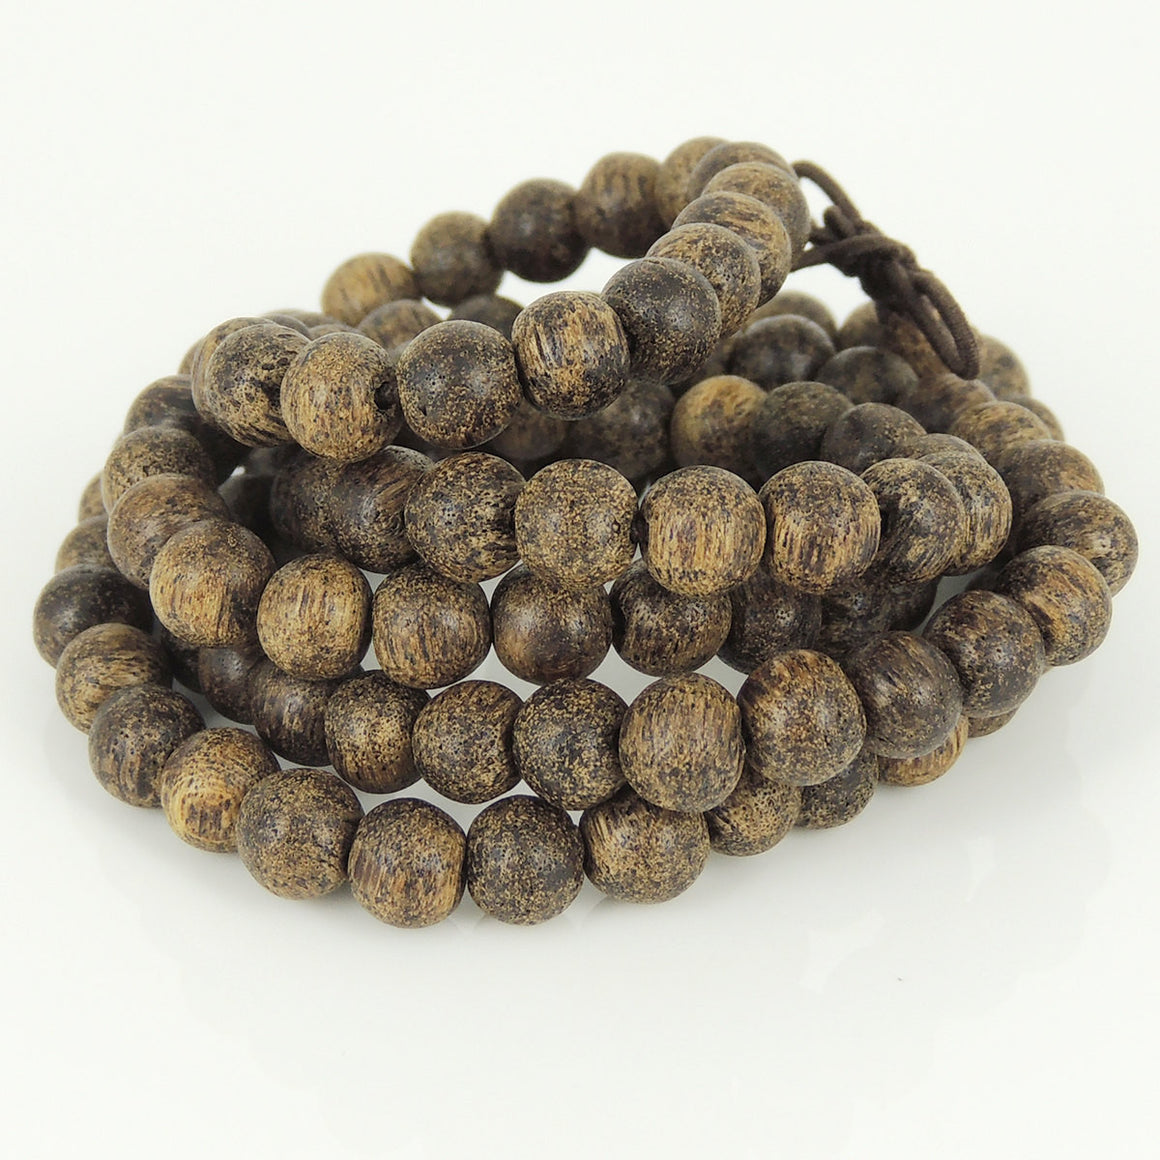 6.5mm Tiger Speckle Agarwood 108 Beads Bracelet/Necklace for Meditation - Gem & Silver AW014